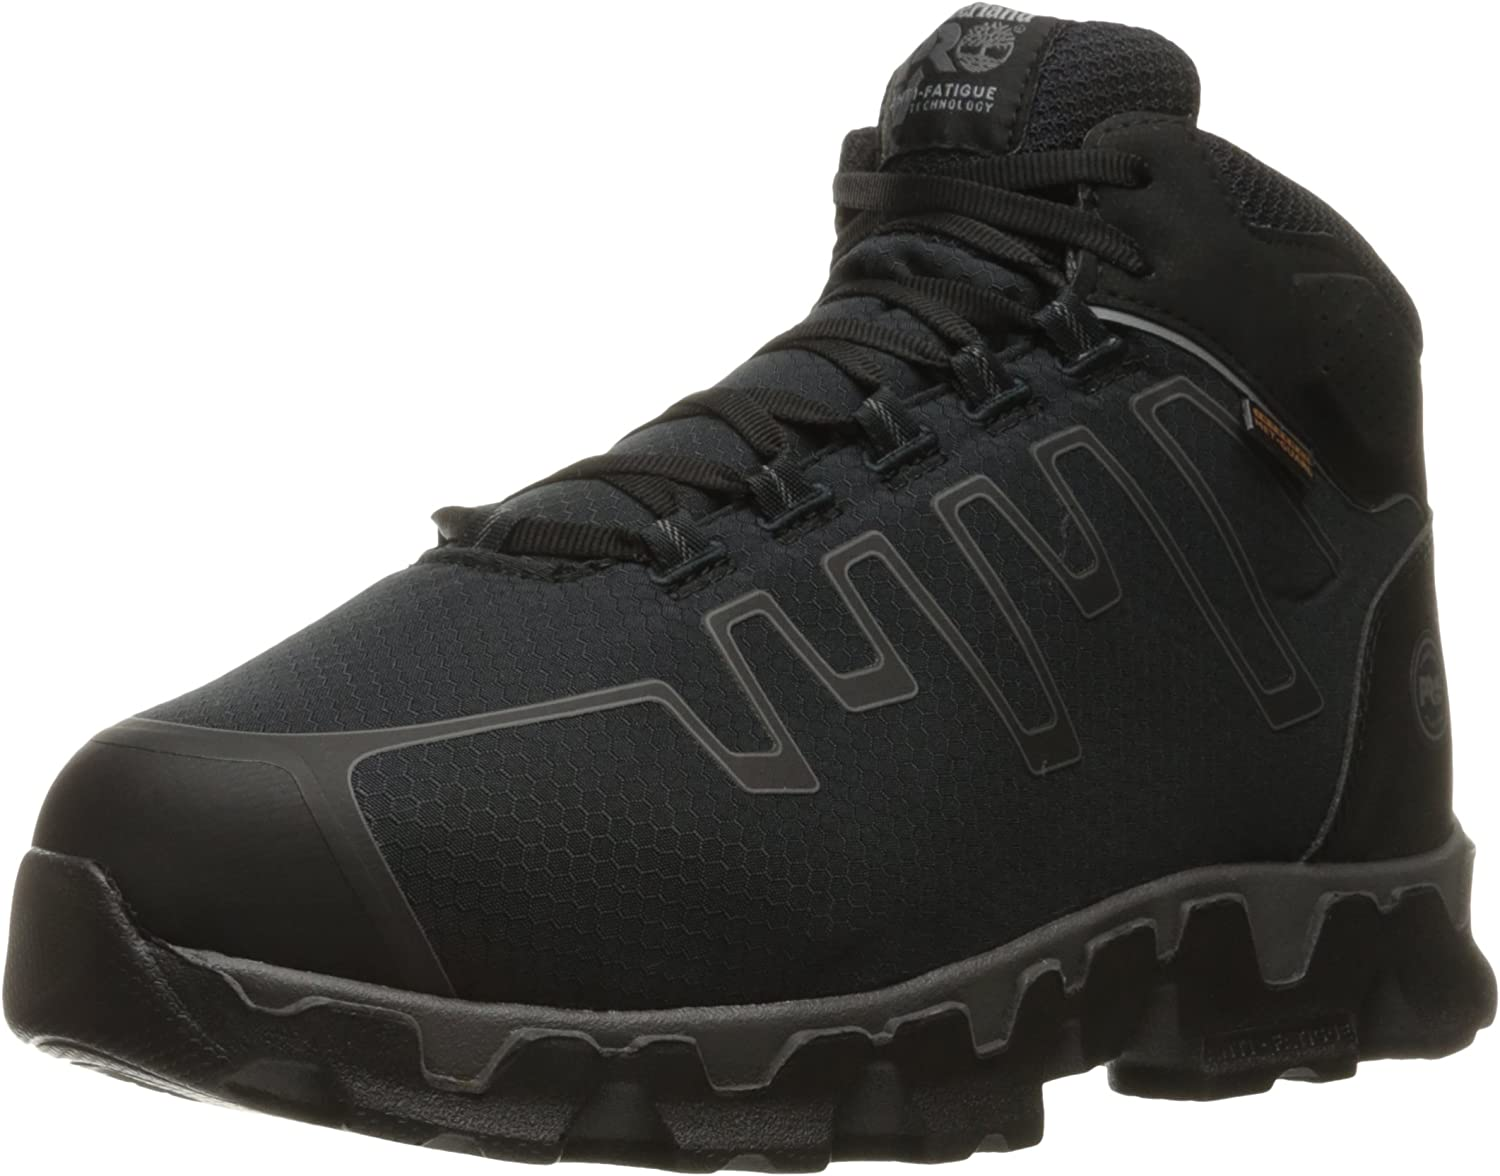 Timberland PRO Men's Powertrain Sport Internal Met Guard Alloy Toe Industrial and Construction Shoe